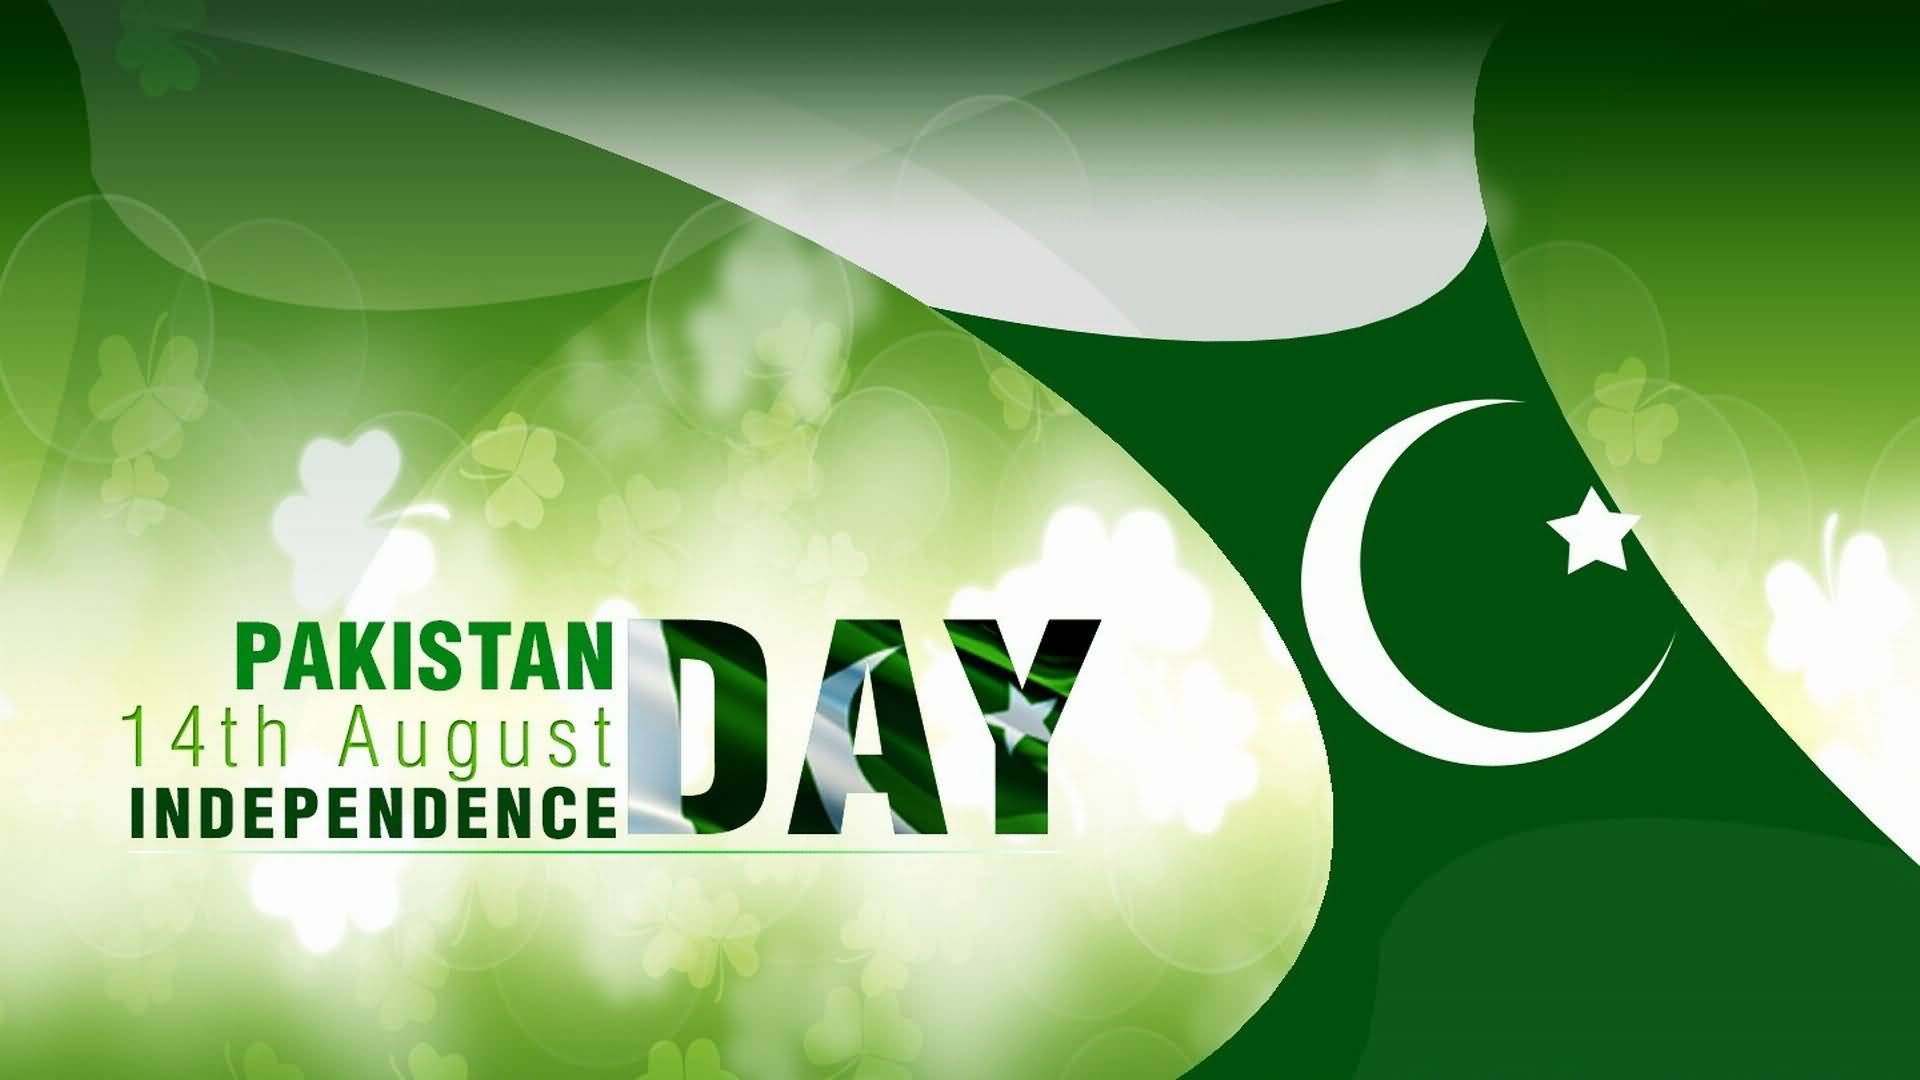 Pakistan independence day 2019, Pakistan day 2019, 15 august 2019, 14 august 2019, 14 august Pakistan, August 2019 Calendar, India independence day, India independence day 2019, dependence day Wallpaper, august 2019 calendar with holidays, 14 august 1947,14 august 2019, independence day Wikipedia, Pakistan republic day, significance of independence, independence day quotes, Pakistan flag, independence day of Pakistan essay